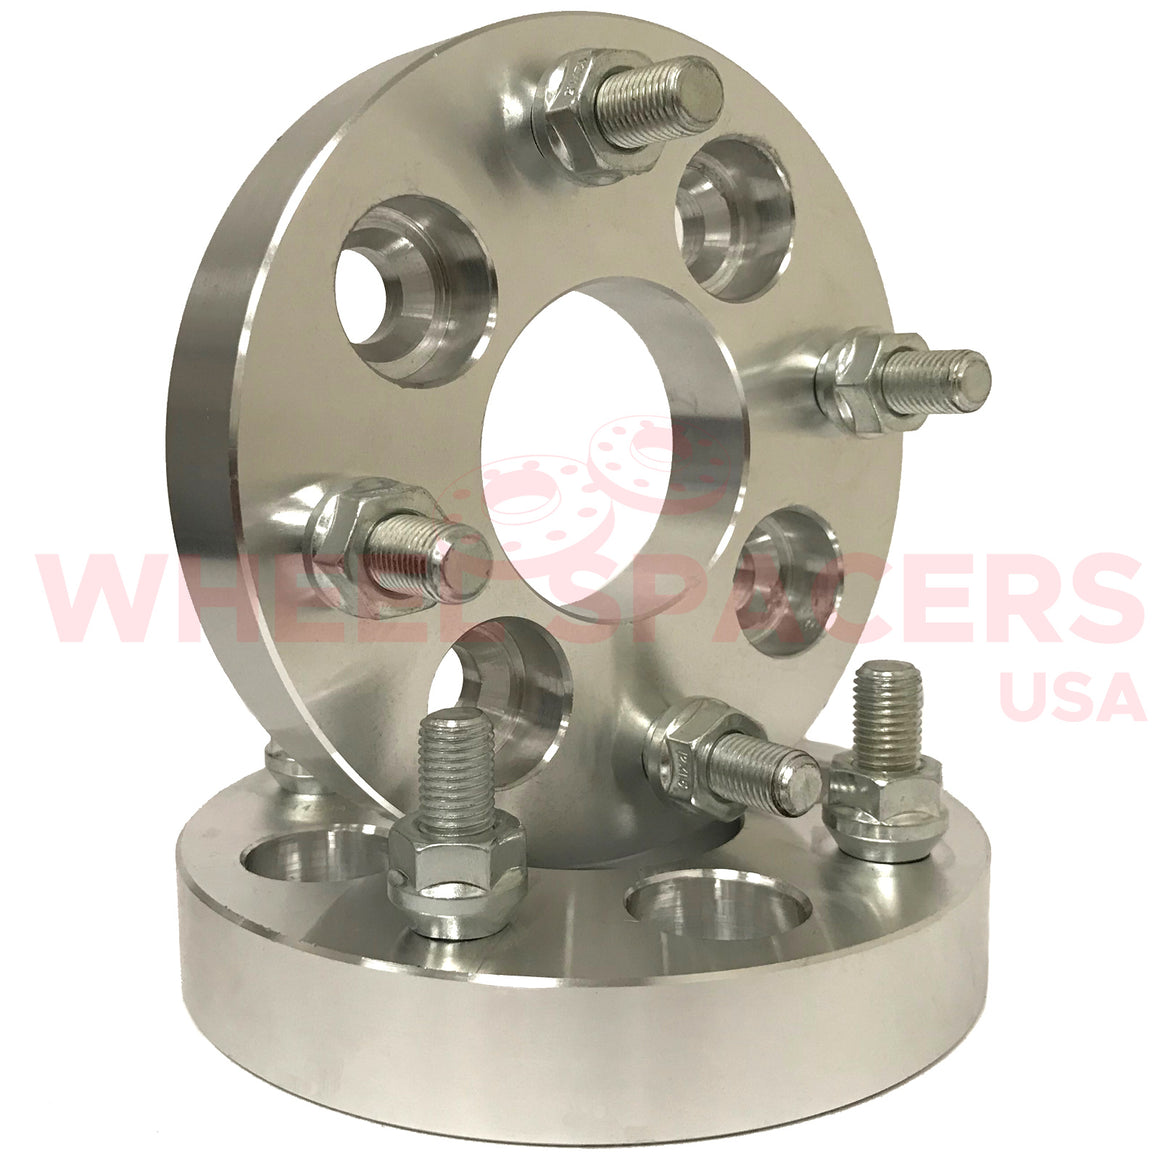 4) Acura Wheel Spacers 4x114.3 With 12x1.5 Studs For Acura CL Integra Type R TL Vigor 4x4.5